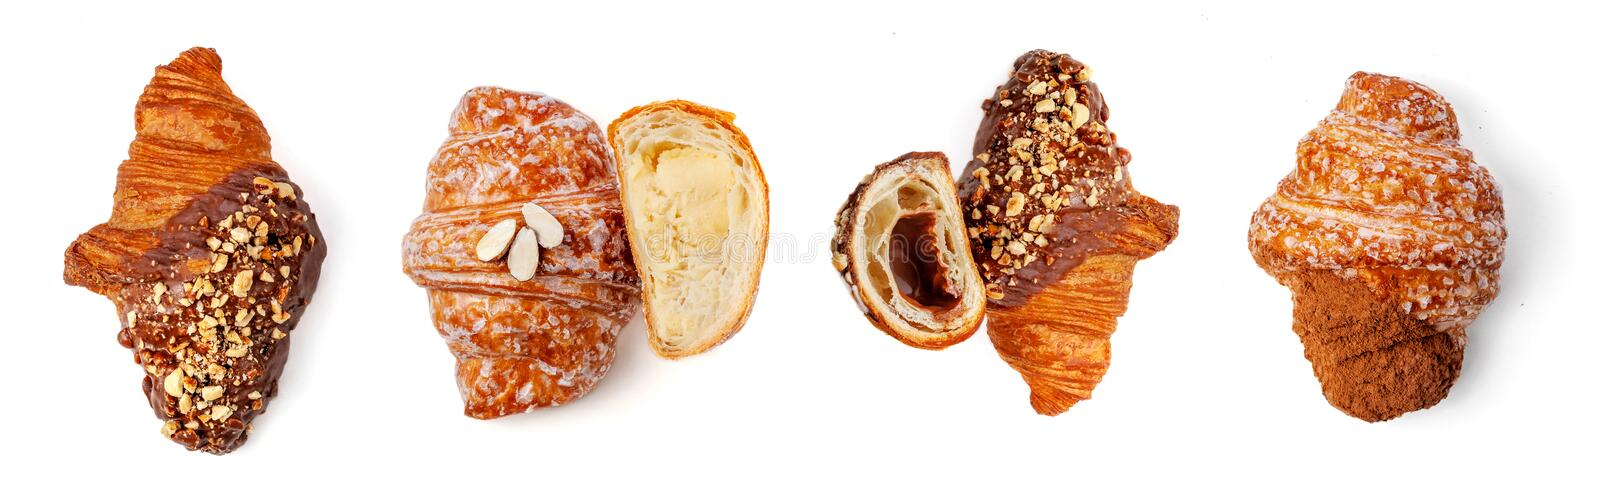 Fresh Croissant with chocolate and nuts isolated on white background, close up. View from above royalty free stock images